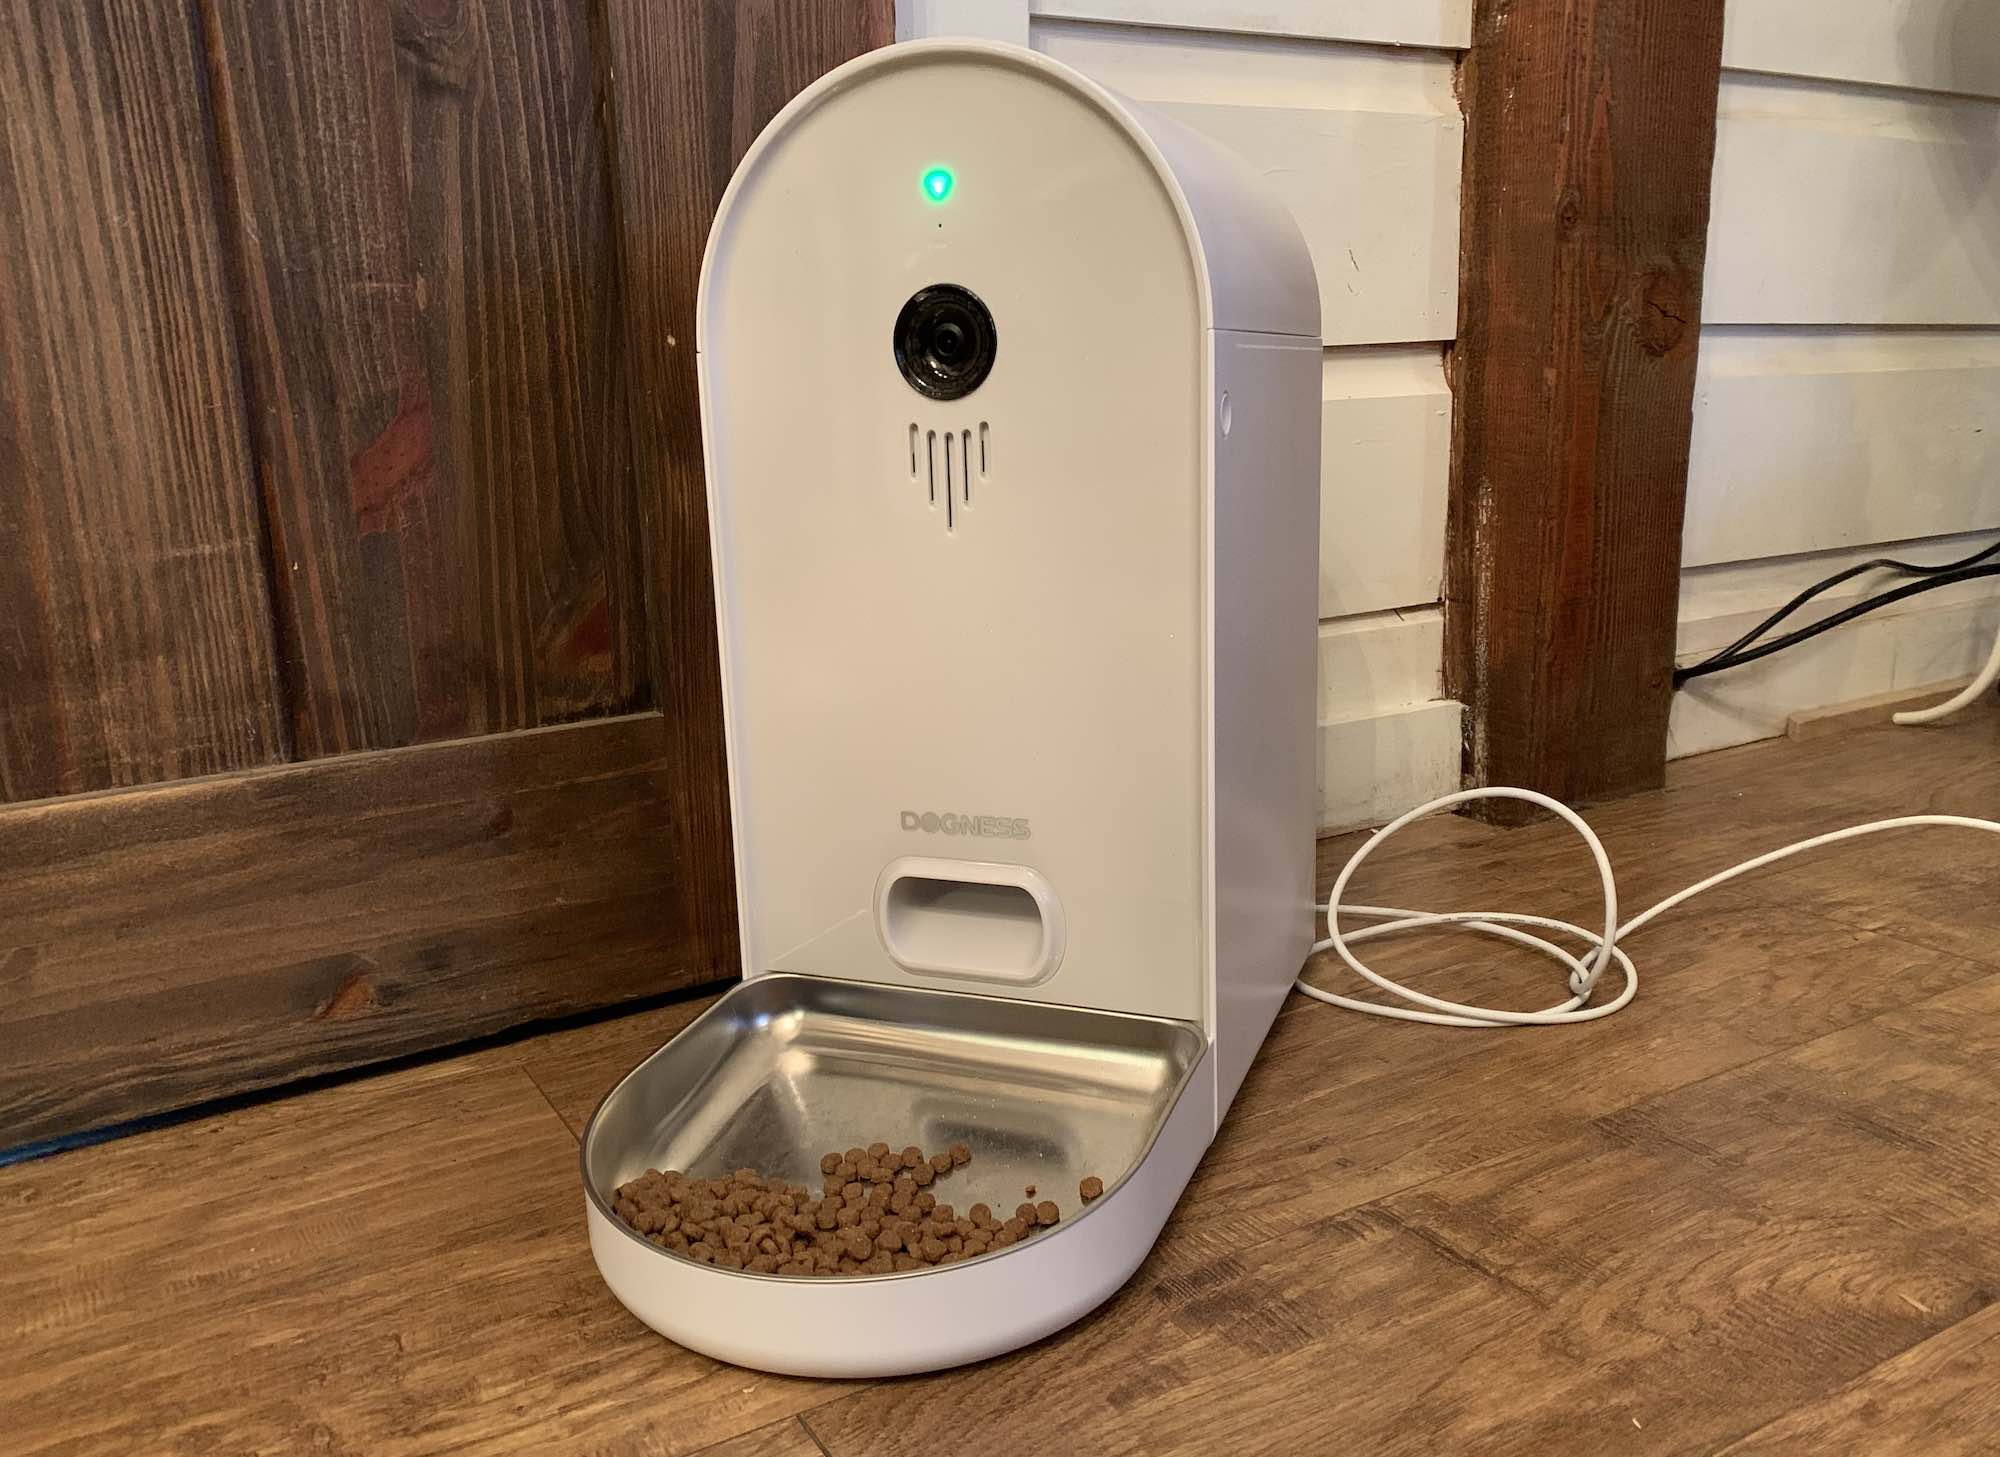 Dogness Smart Cam Pet Feeder Test and Review